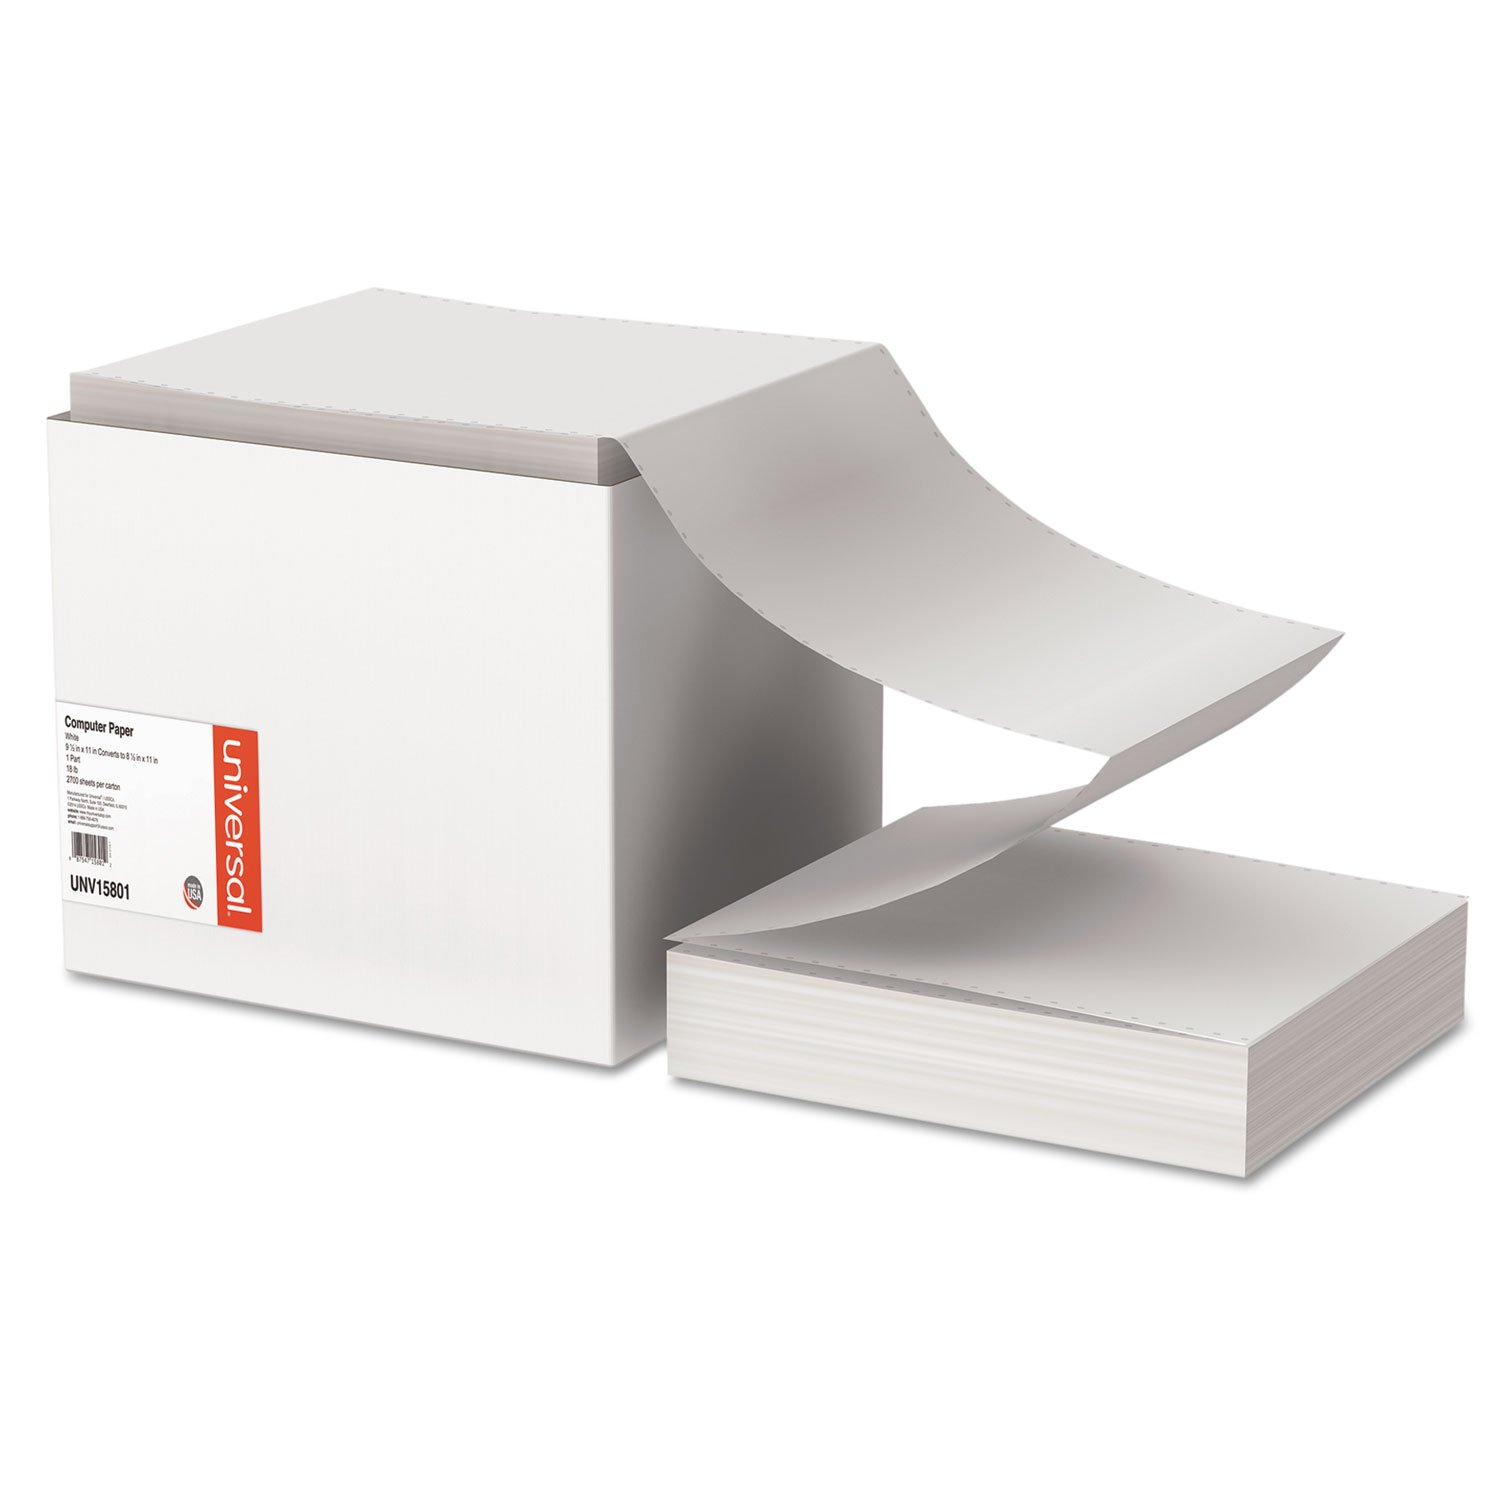 Universal 15801 Computer Paper, 18lb, 9-1/2 x 11, Letter Trim Perforations, White, 2700 Sheets